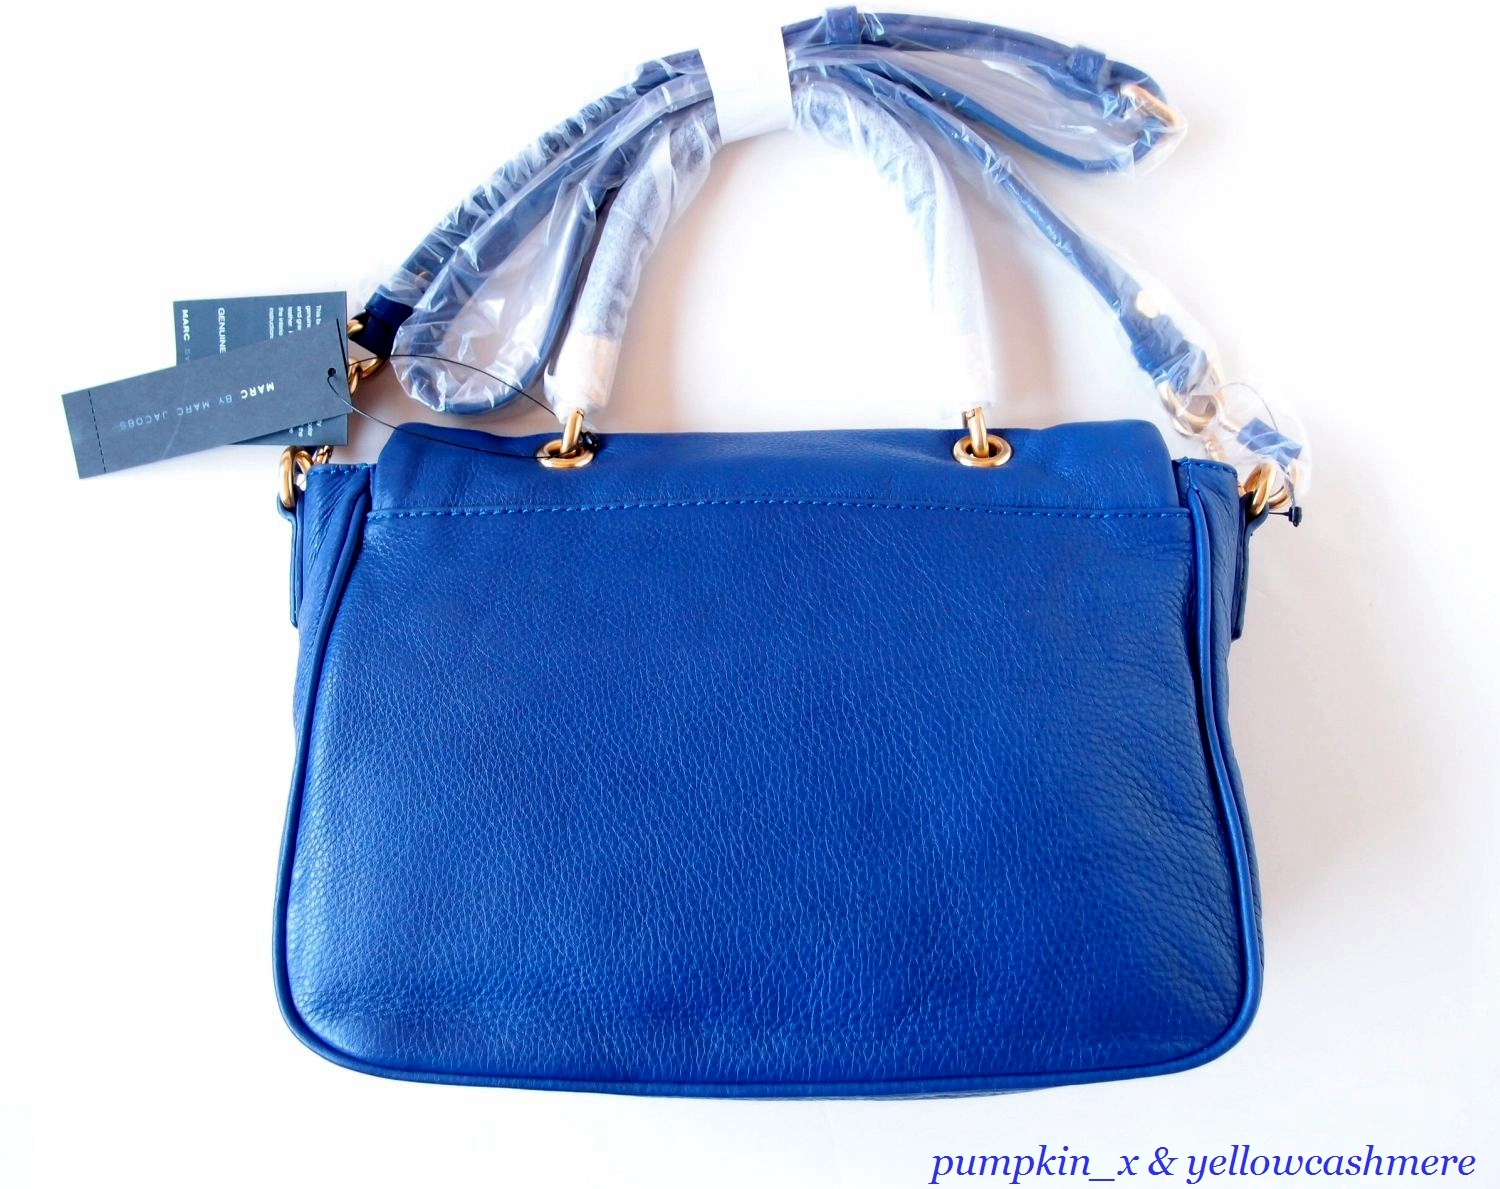 NWT MARC by MARC JACOBS 'Too Hot to Handle' Top Handle Satchel BAUHAUS BLUE $428